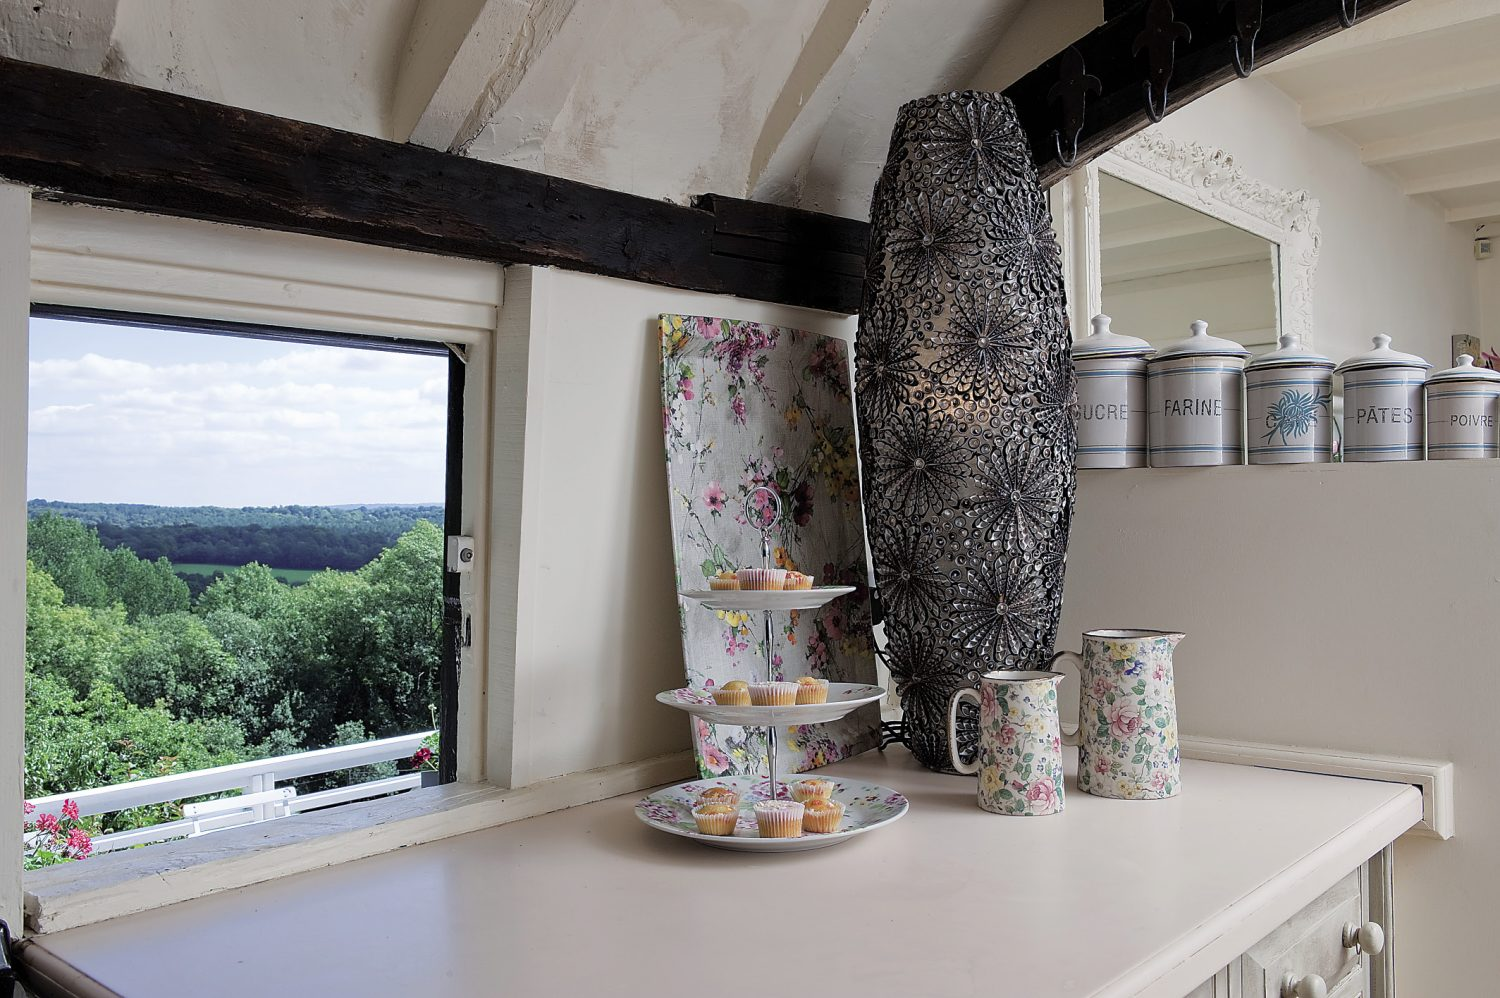 The view from the kitchen window overlooks the terrace at the rear of the property